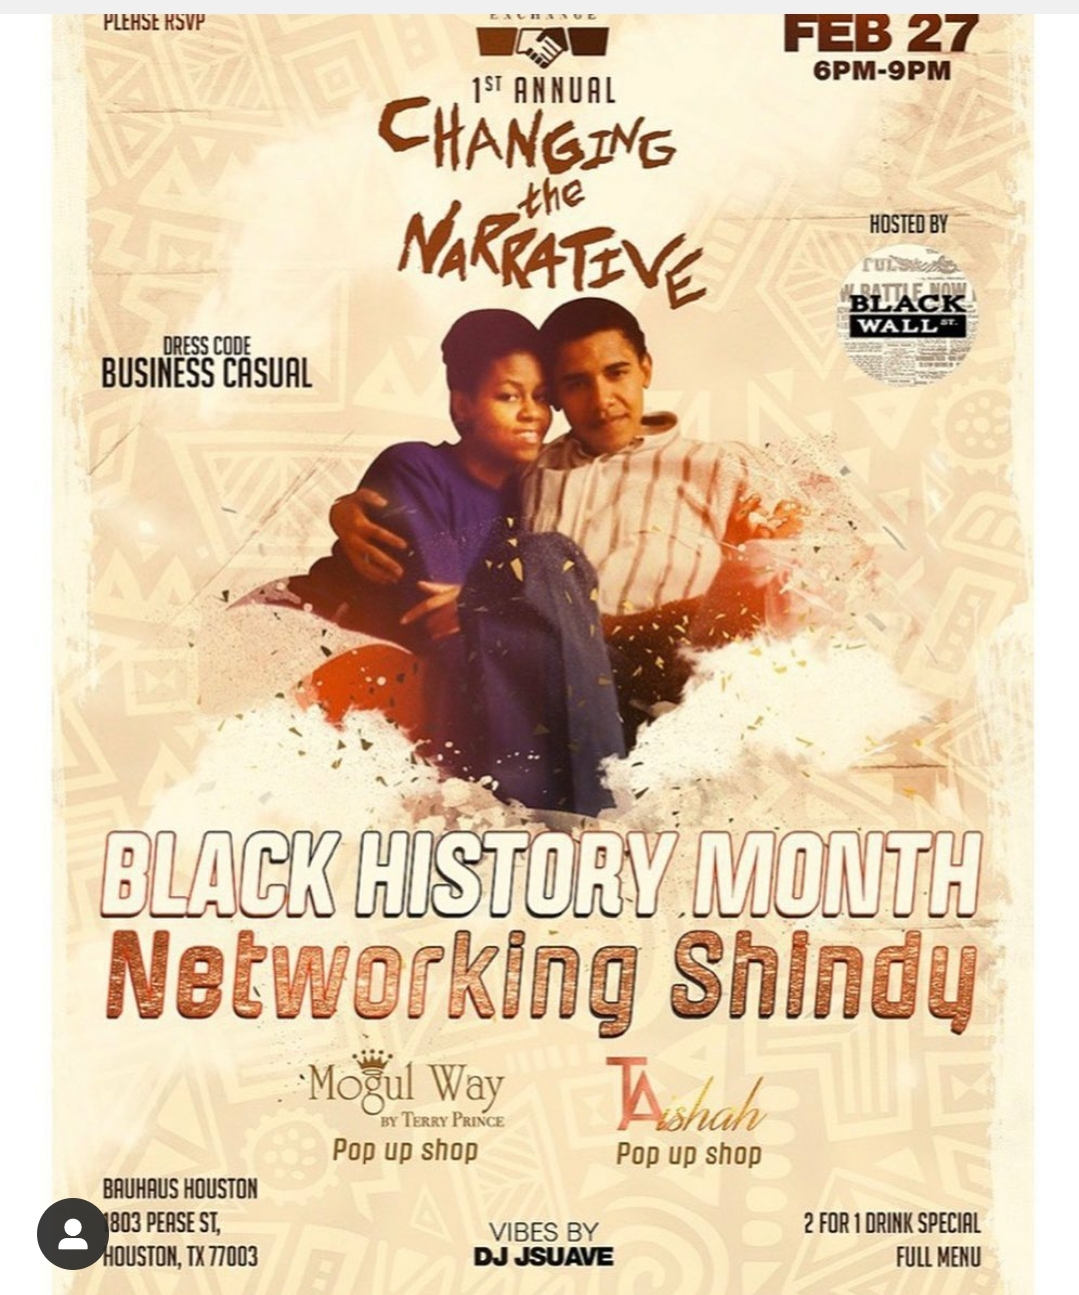 1st Annual Changing the Narrative Networking Shindy